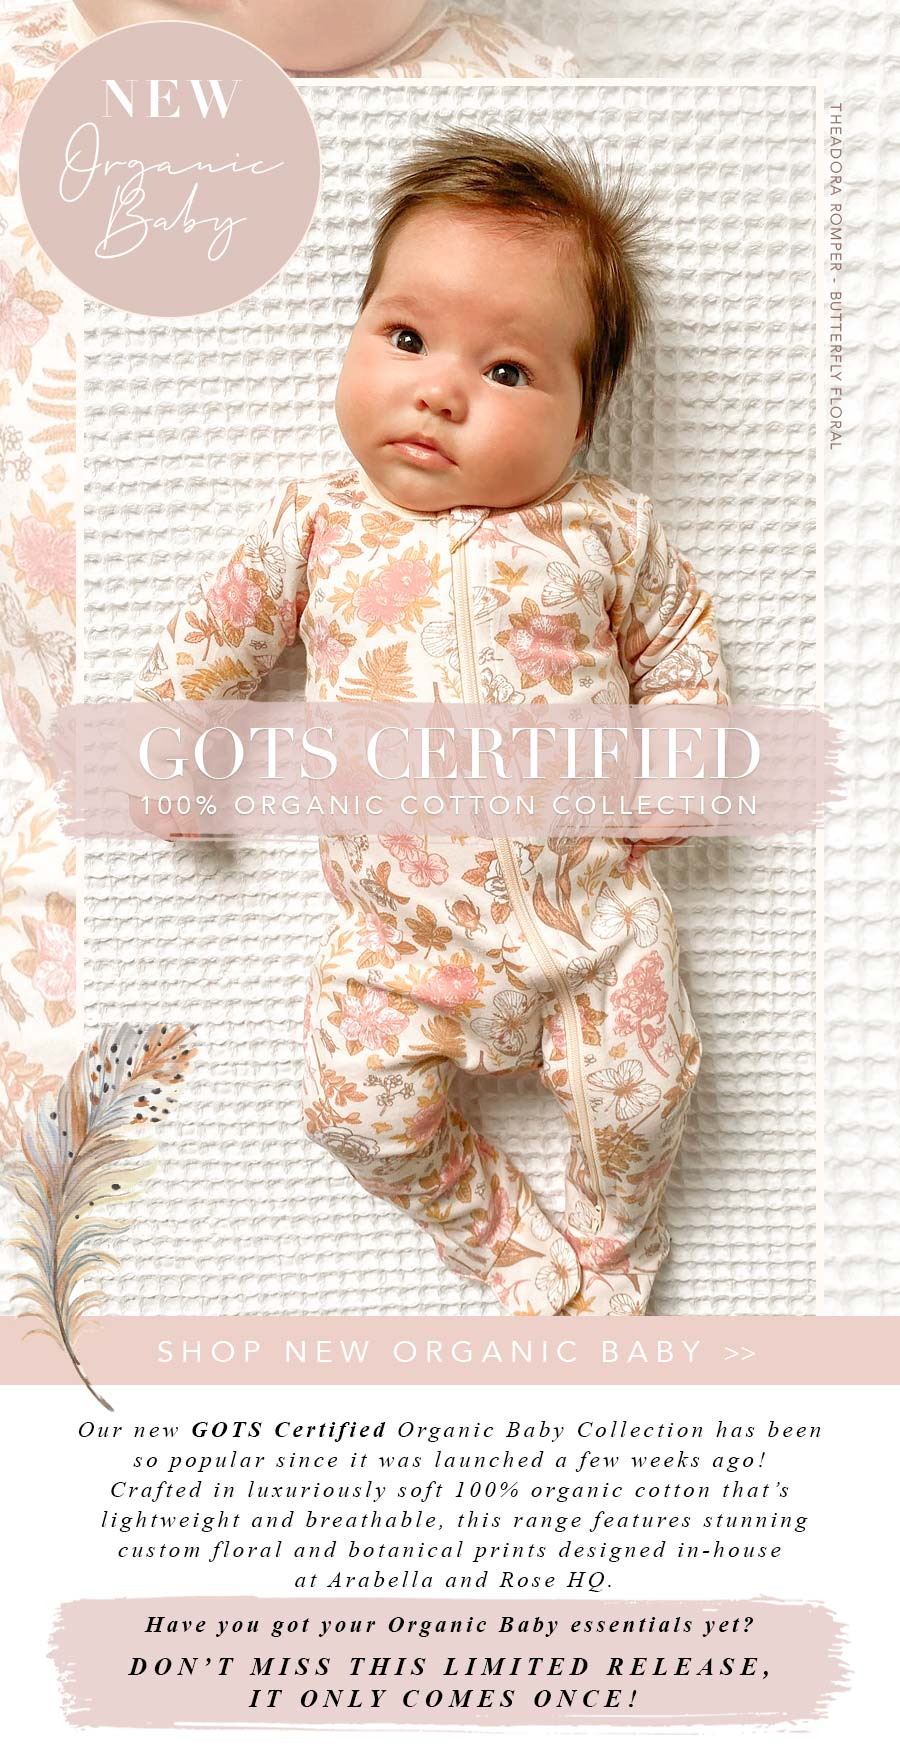 Organic Baby Feature Image